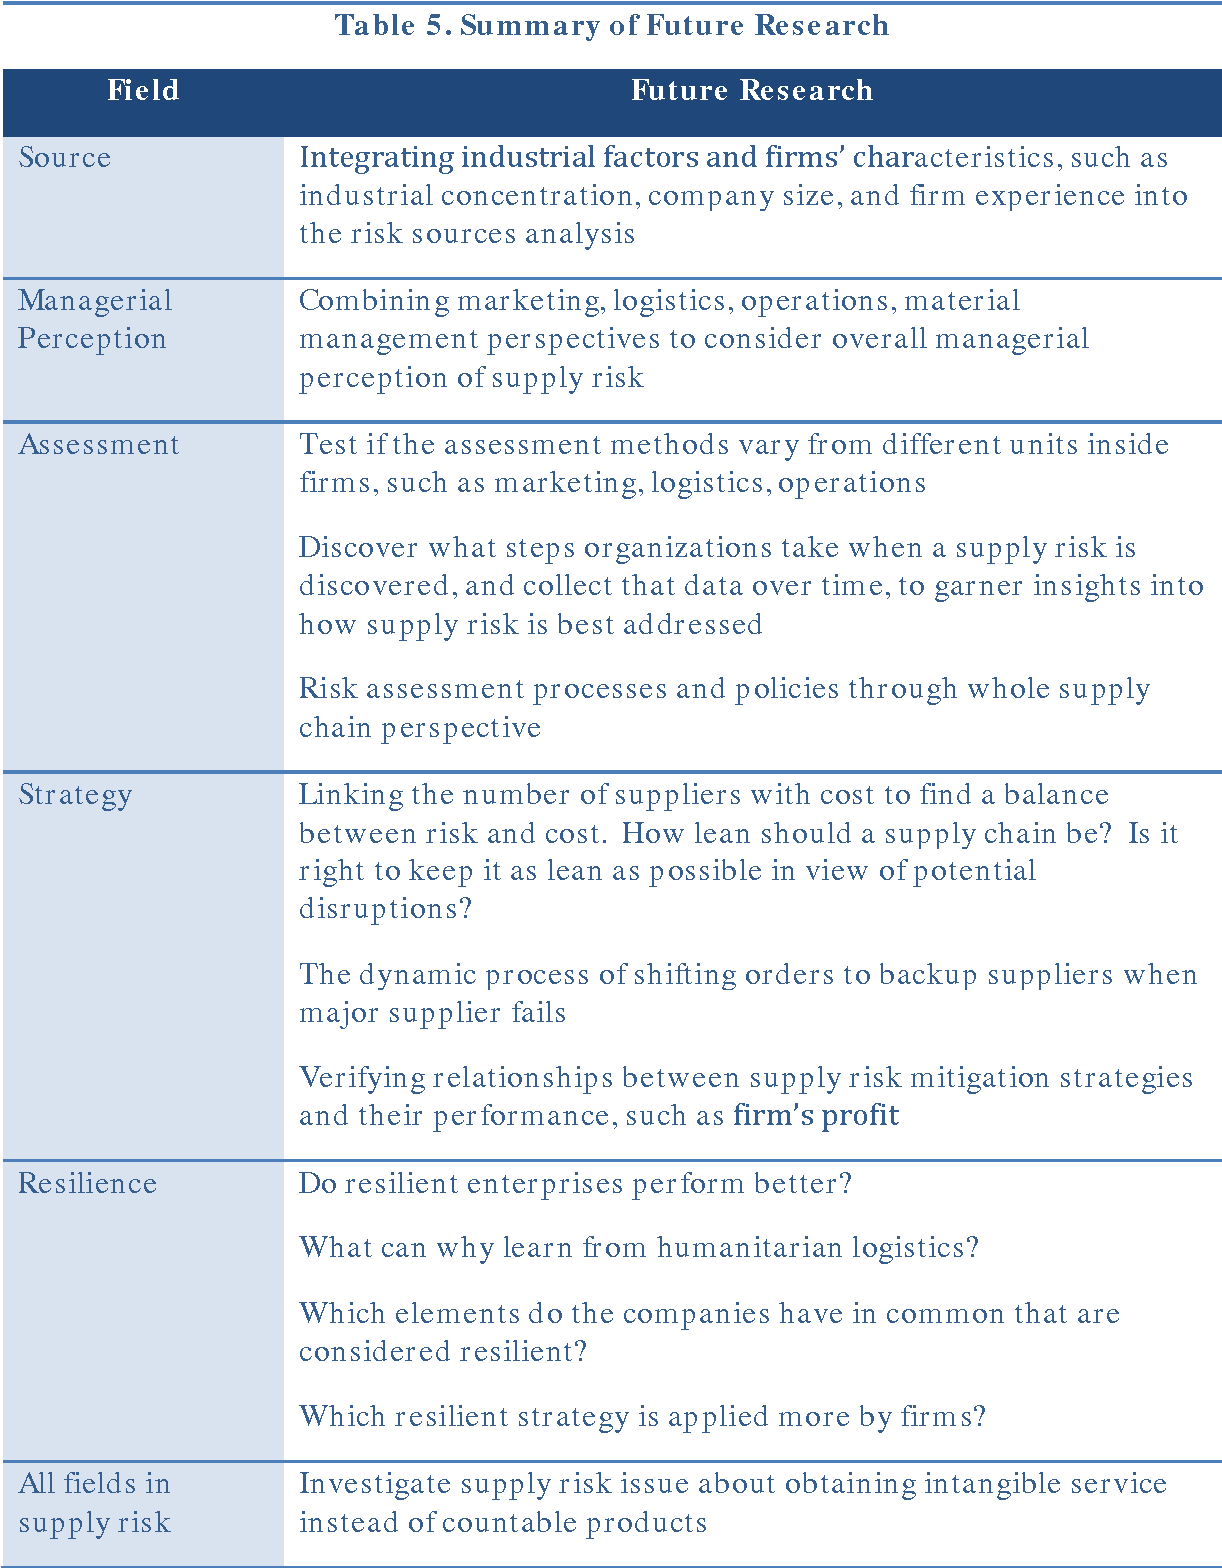 Table 1 From Building A Cyber Supply Chain Assurance Reference Model